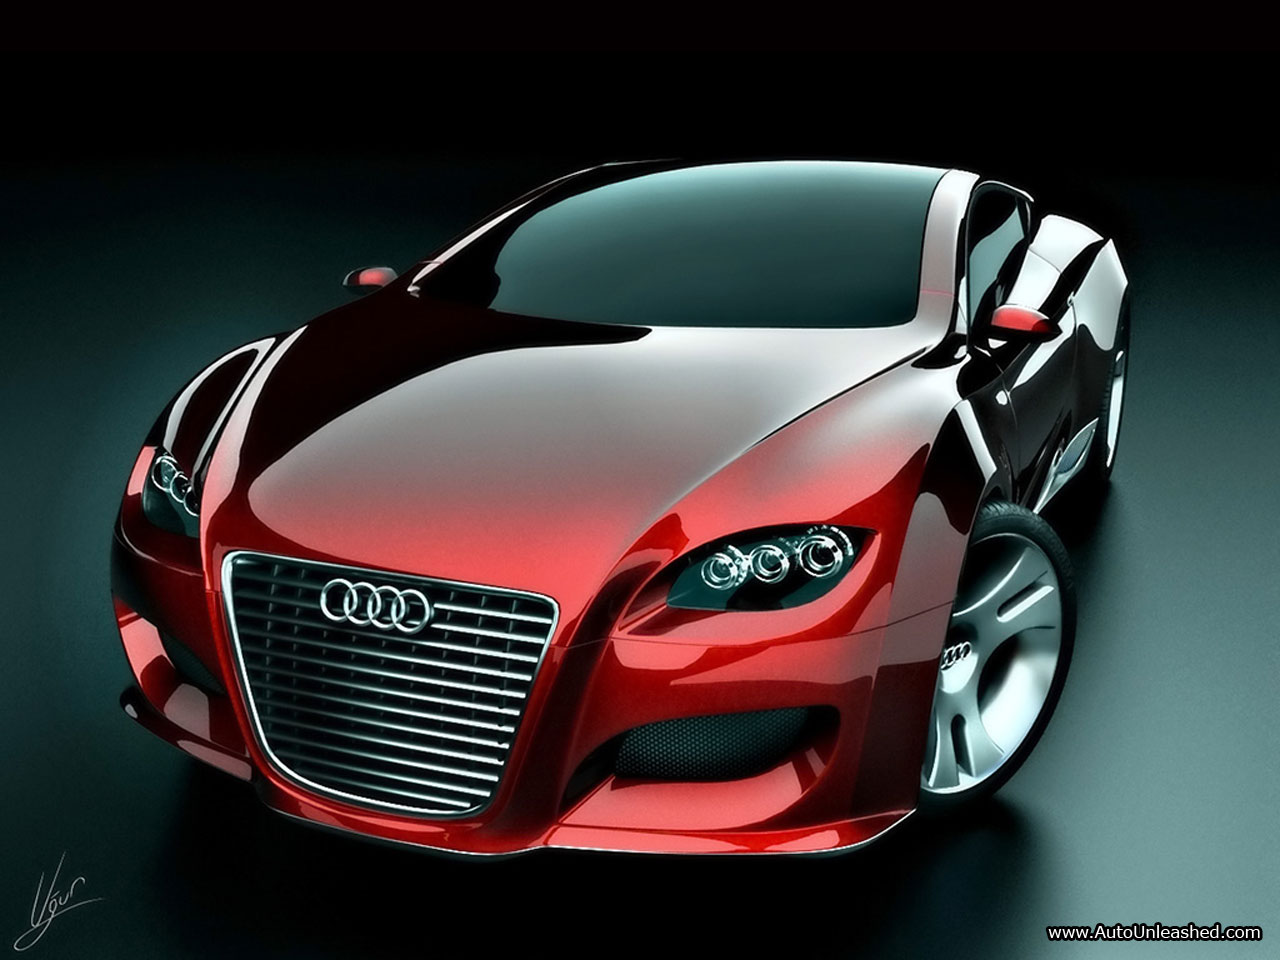 cool cars wallpapers cool cars pictures cool cars images cool cars 1280x960